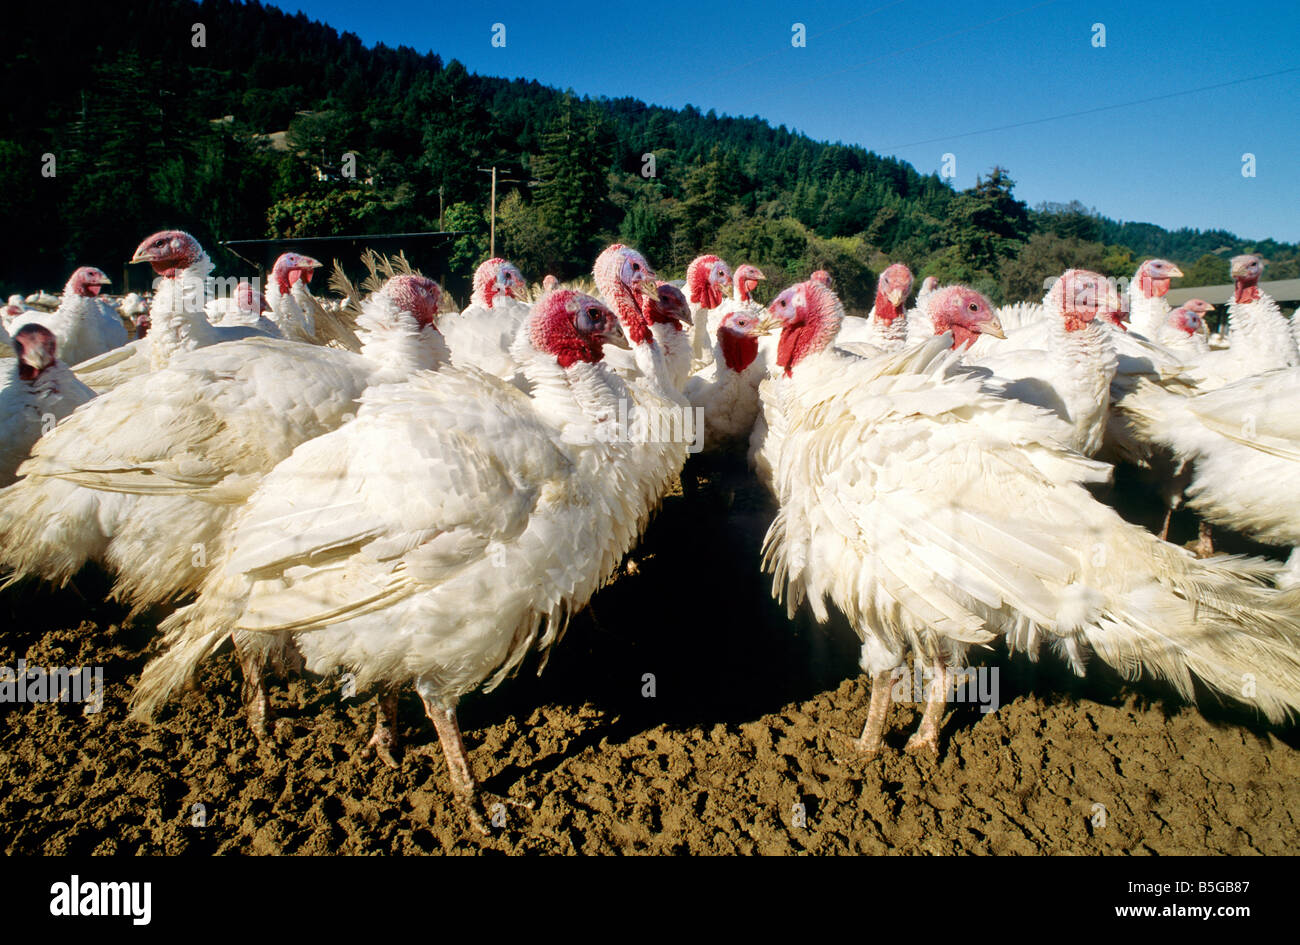 Turkeys 'free ranging'  poultry ranch. Stock Photo